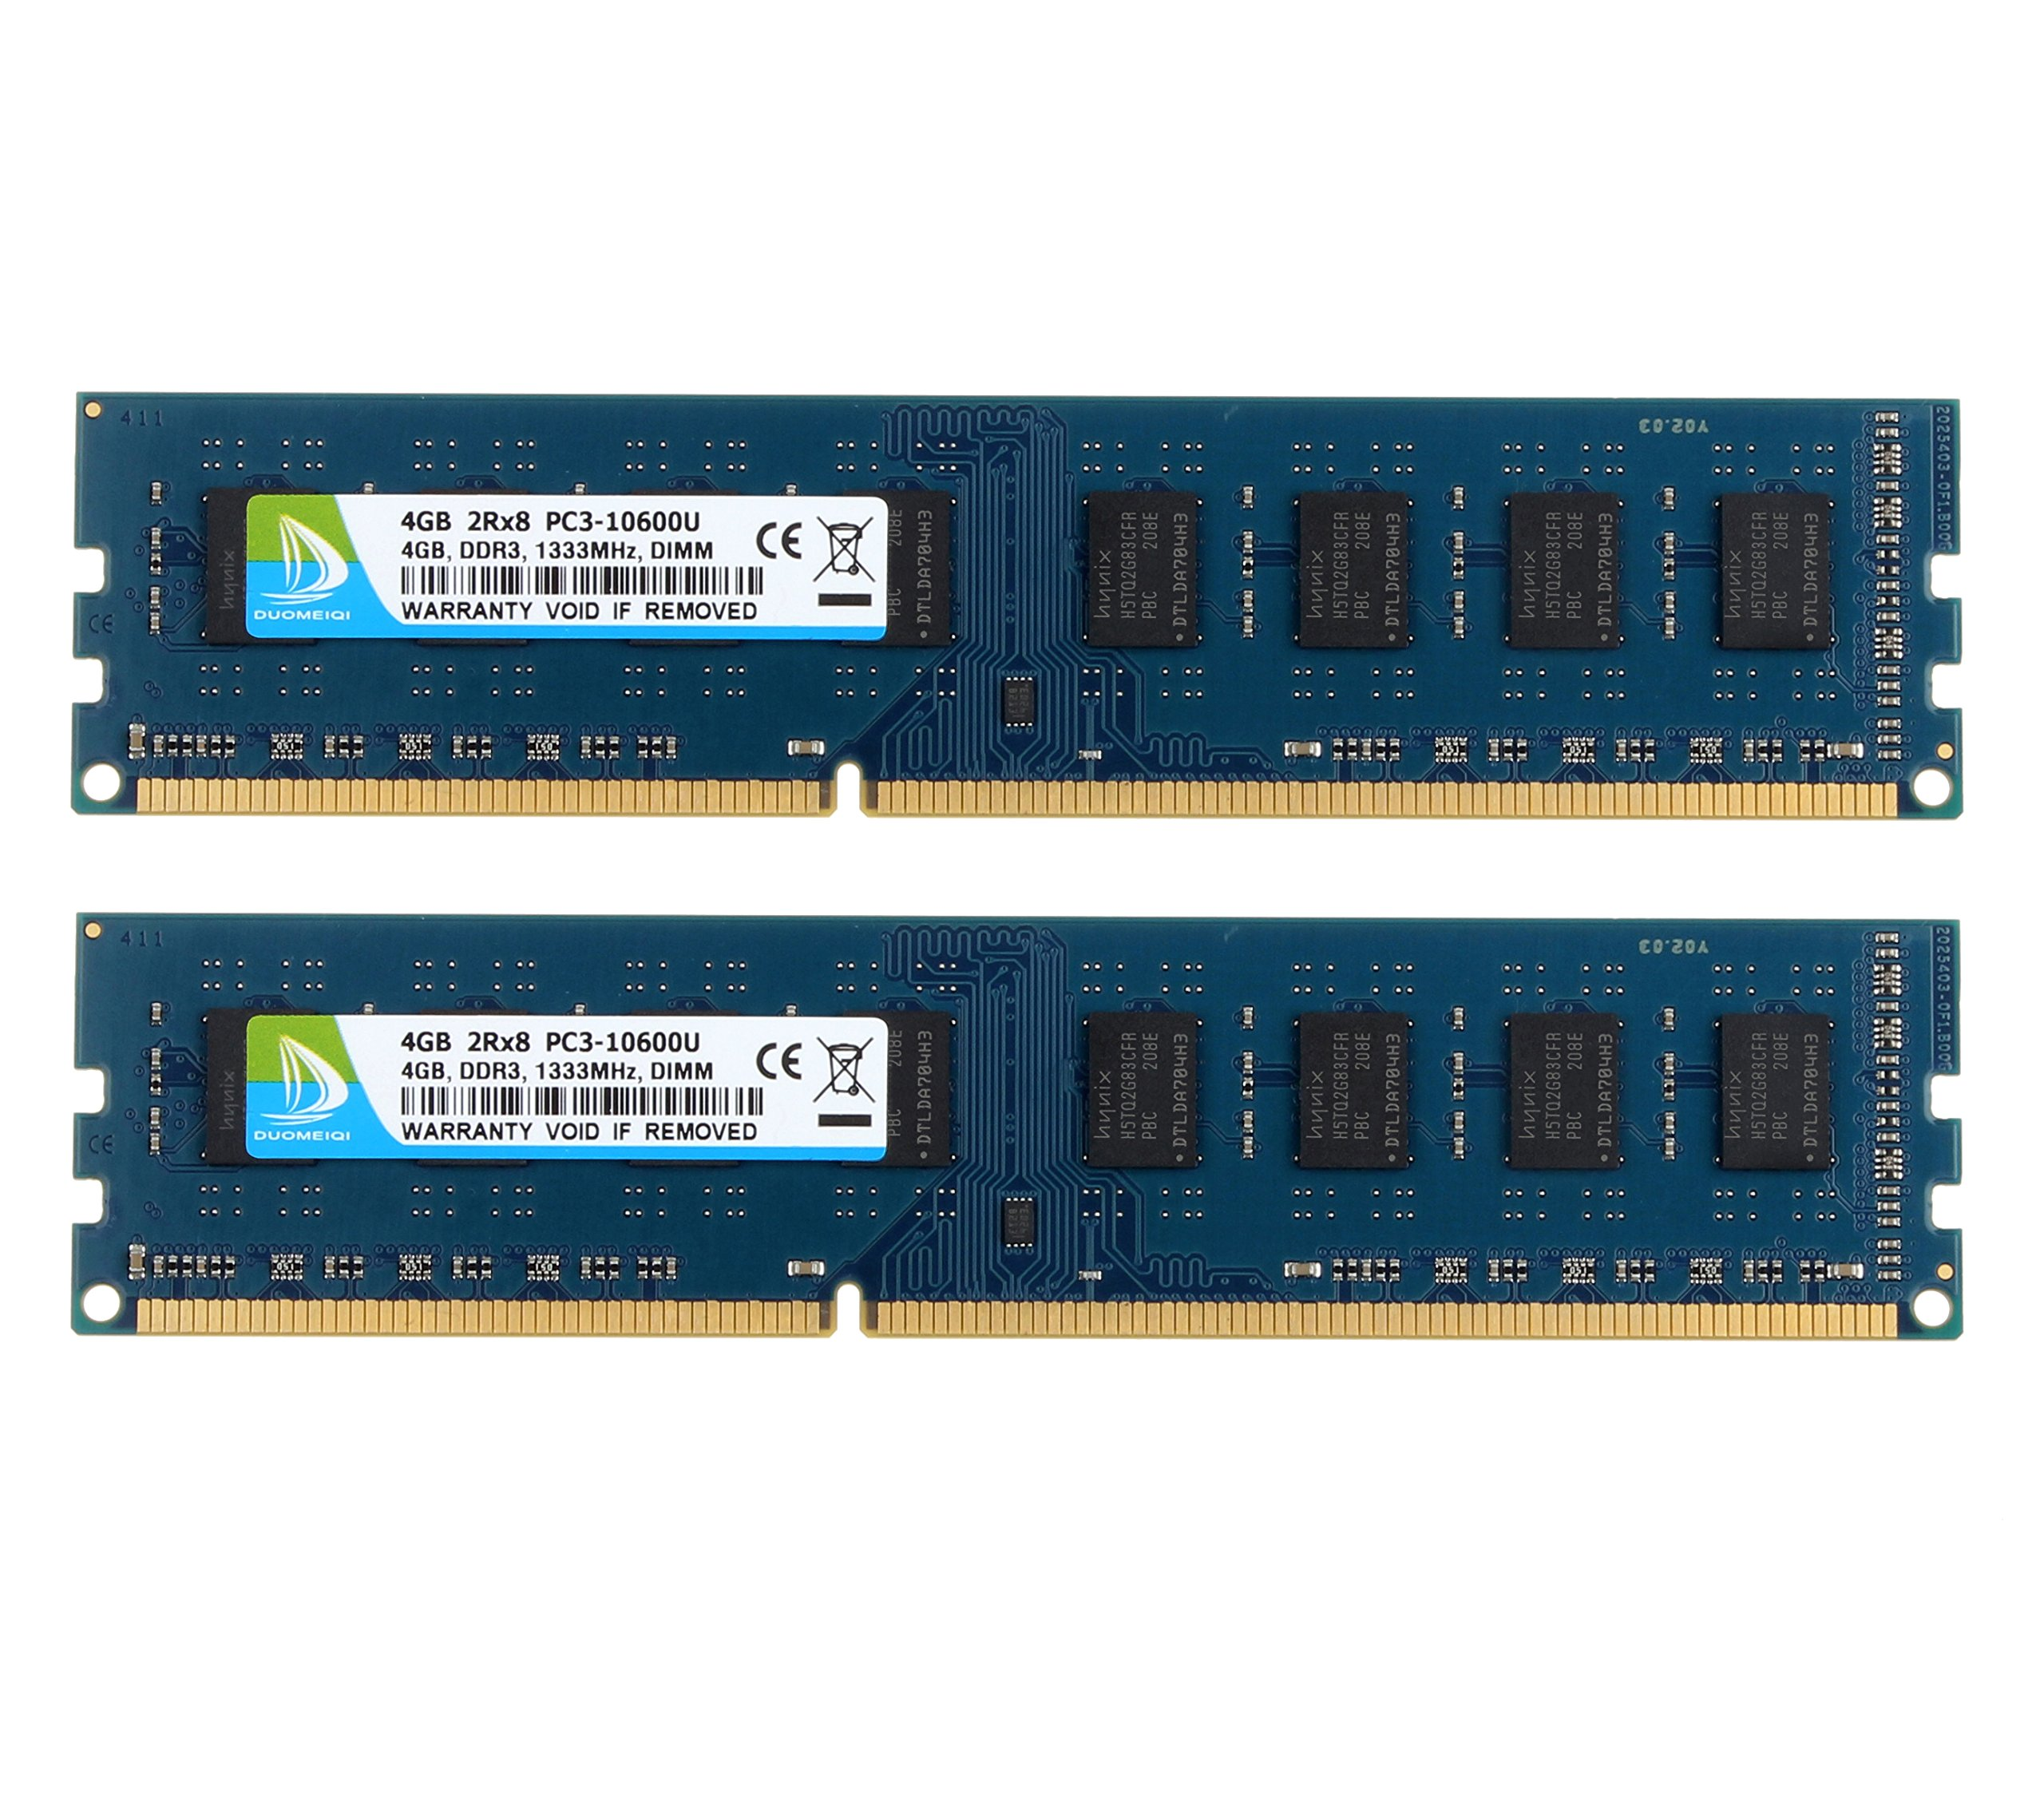 Memoria Ram 8gb Duomeiqi Kit (2 X 4gb) Ddr3 1333mhz Dimm Pc3-10600 Pc3-10600u 2rx8 Cl9 1.5v (240 Pin) Non-ecc Unbuffered